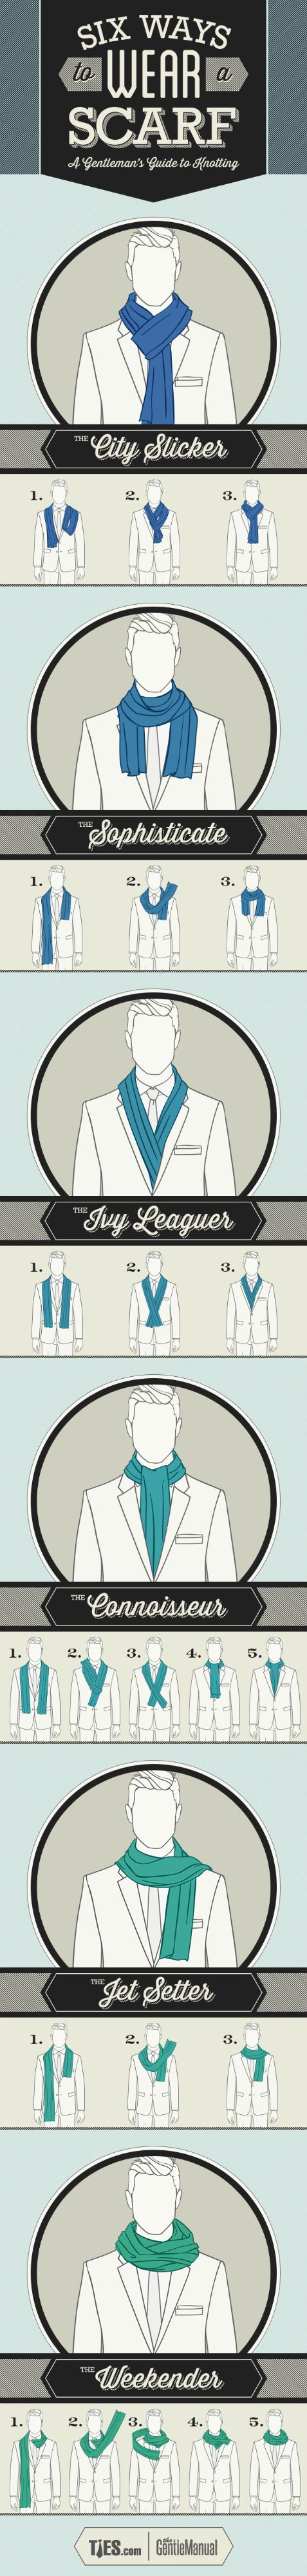 Great inspiration for my set of cue cards - illustrating different 'types' and how they wear their ties.